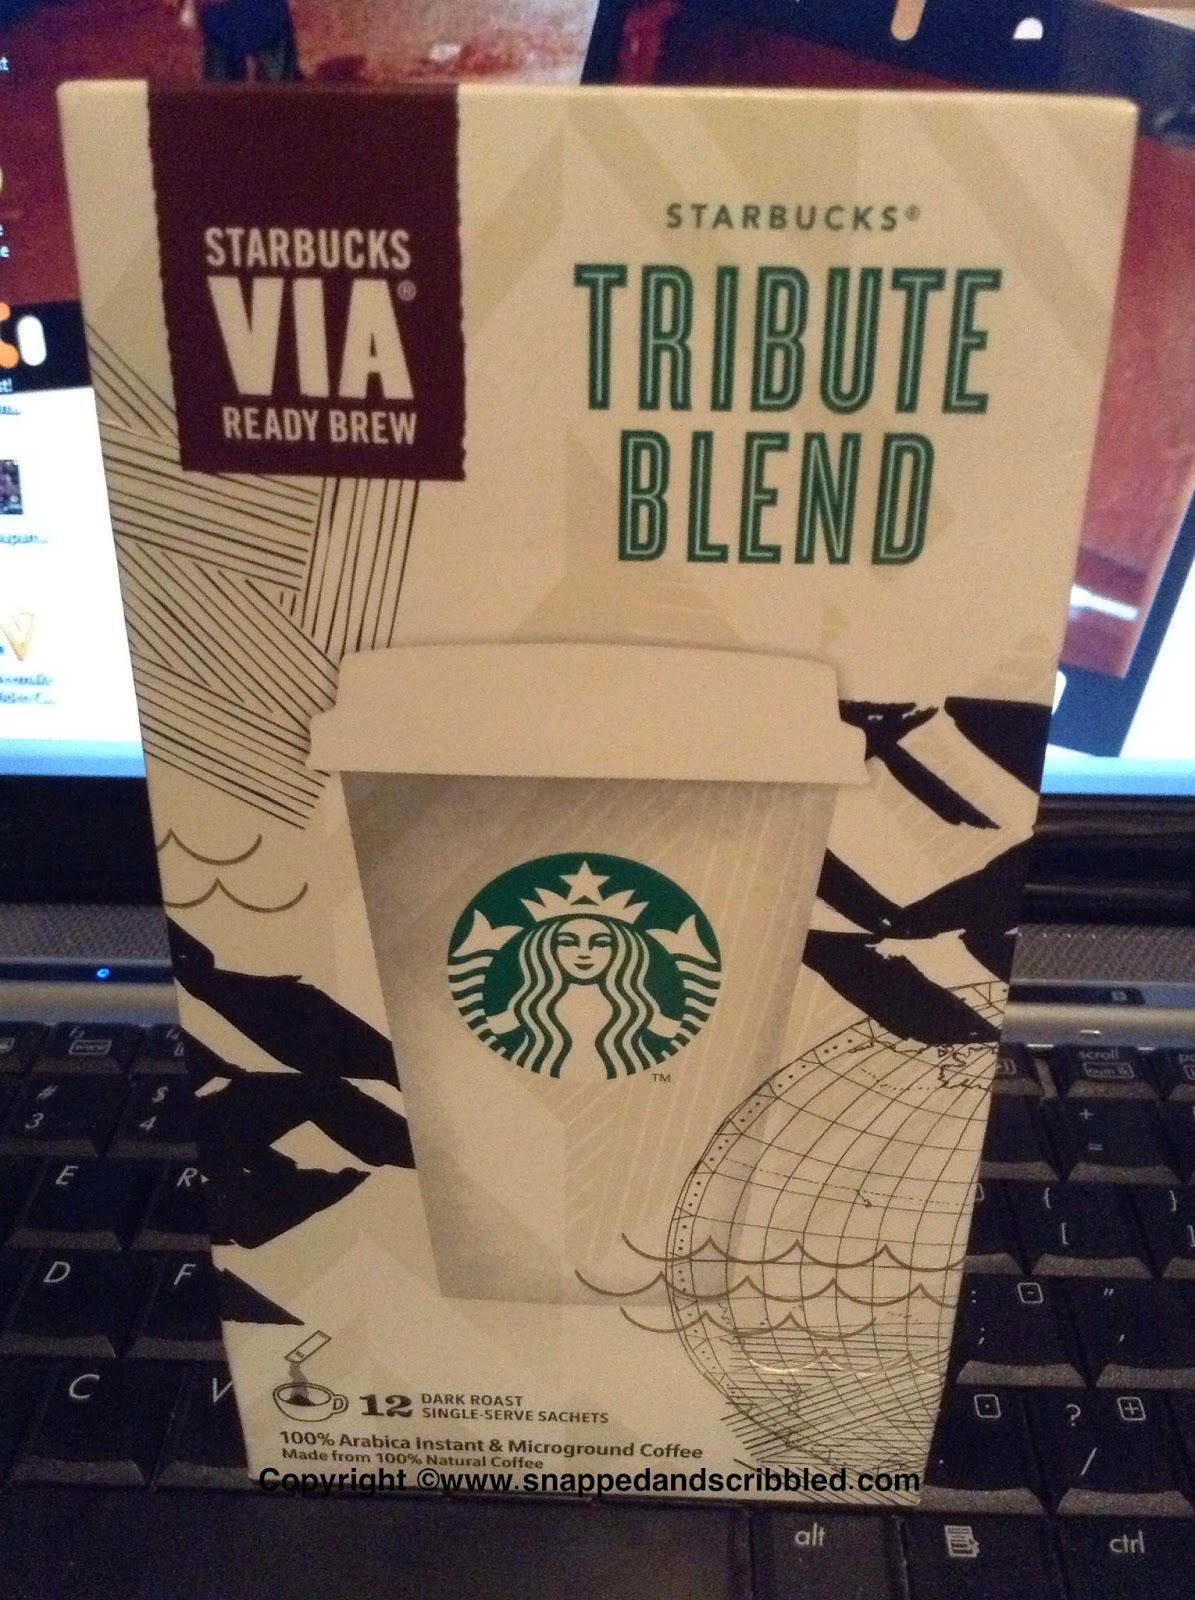 Starbucks VIA Tribute Blend